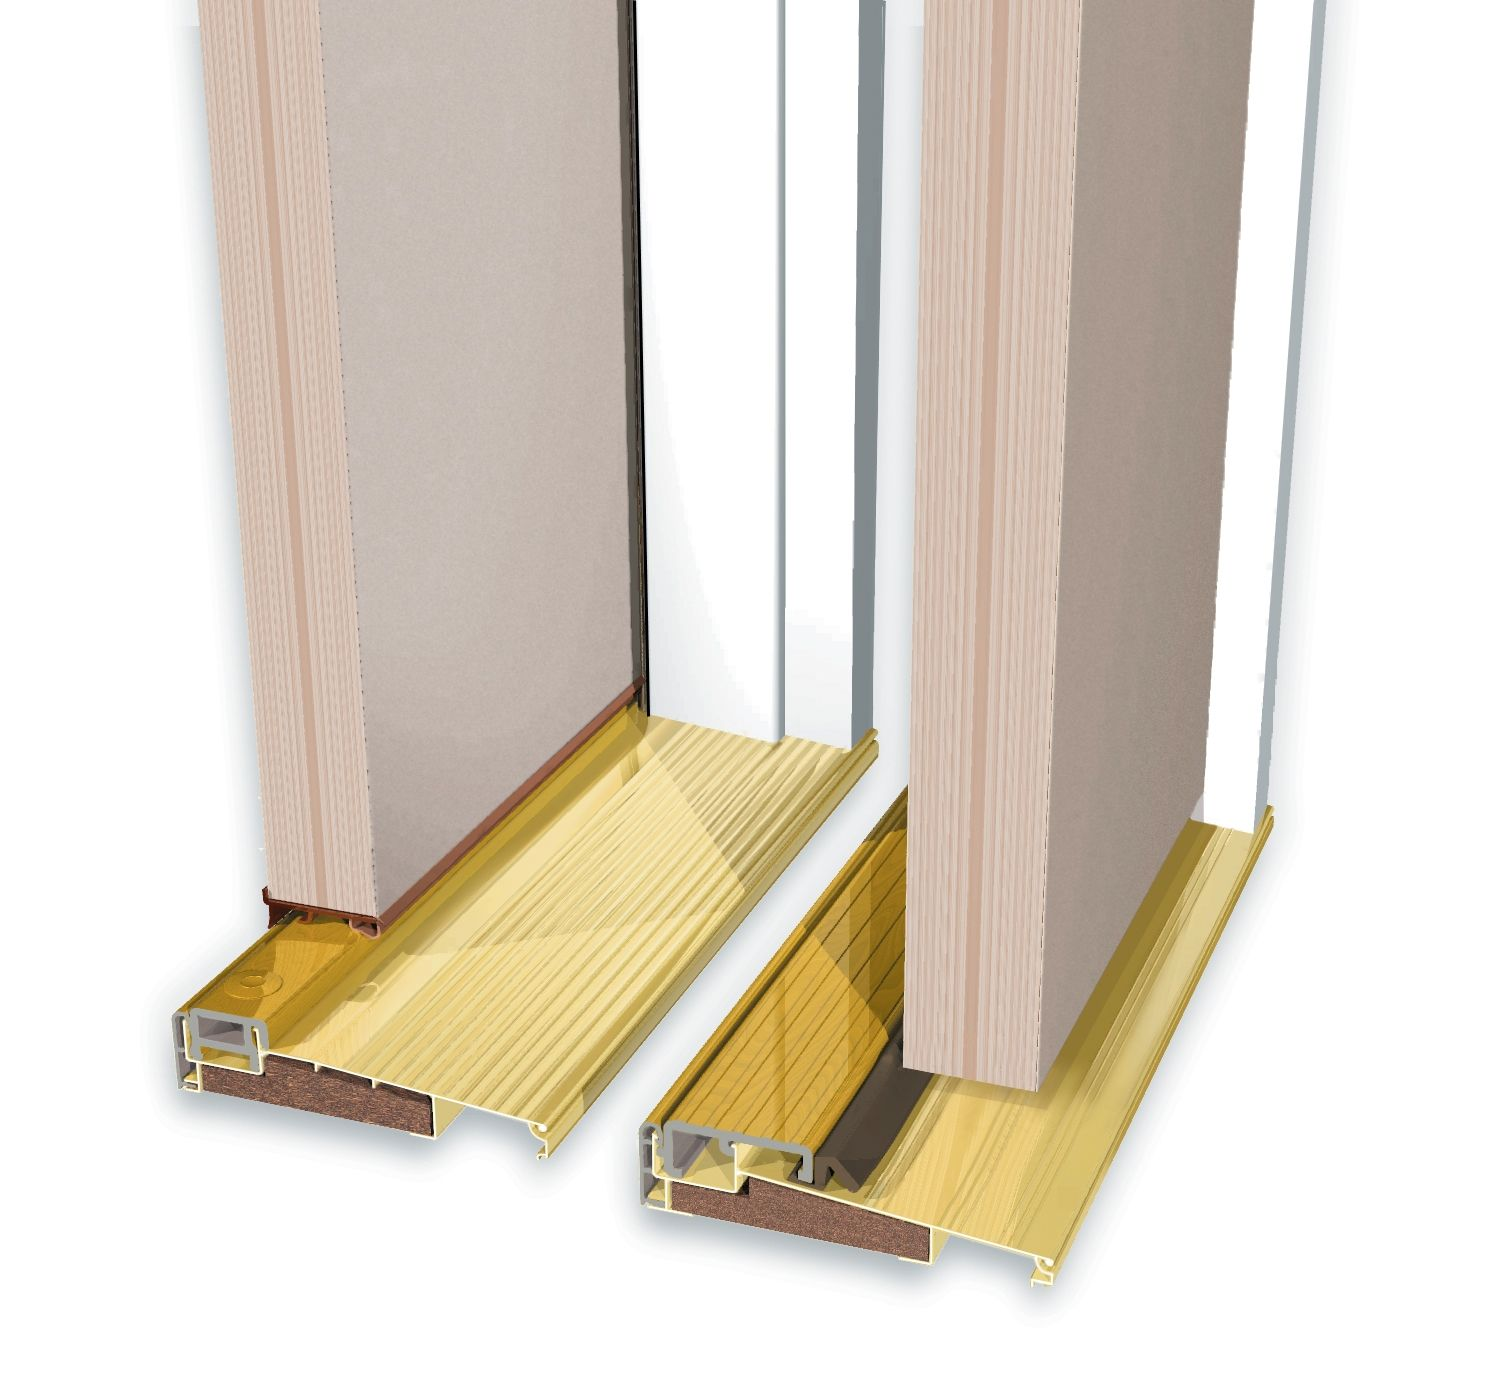 Outswing Exterior Door Jamb Outswing Exterior Door Exterior